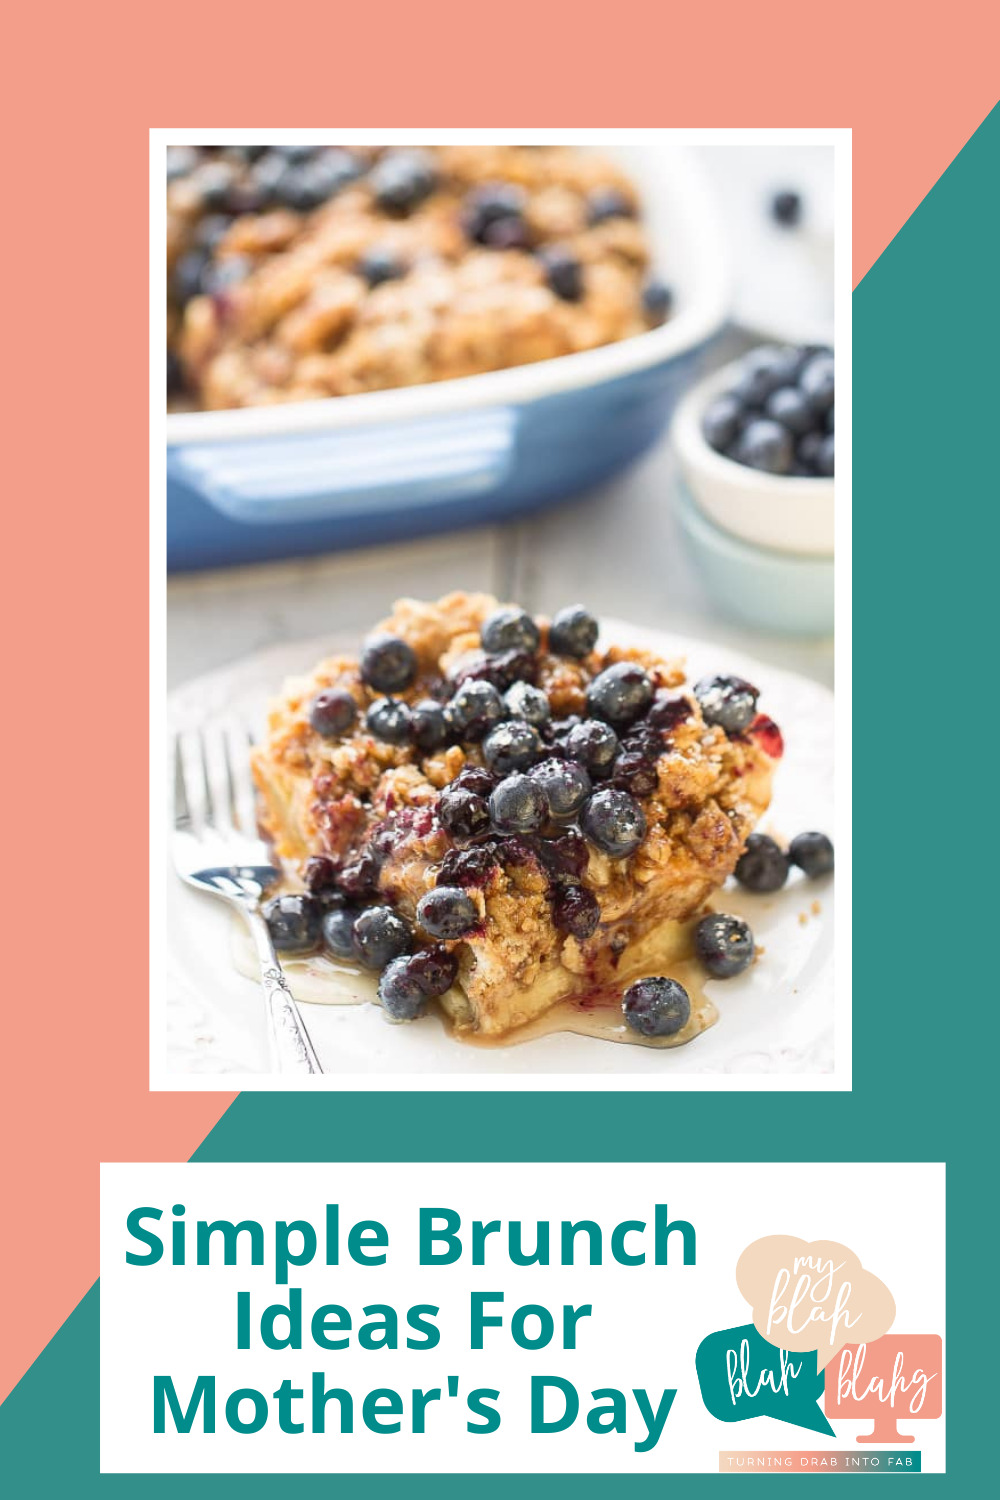 Myblahblahblahg.com has tips and tricks for anything and everything! Find whatever it is you're looking for. Get ready for Mother's Day with these tasty and easy brunch ideas!